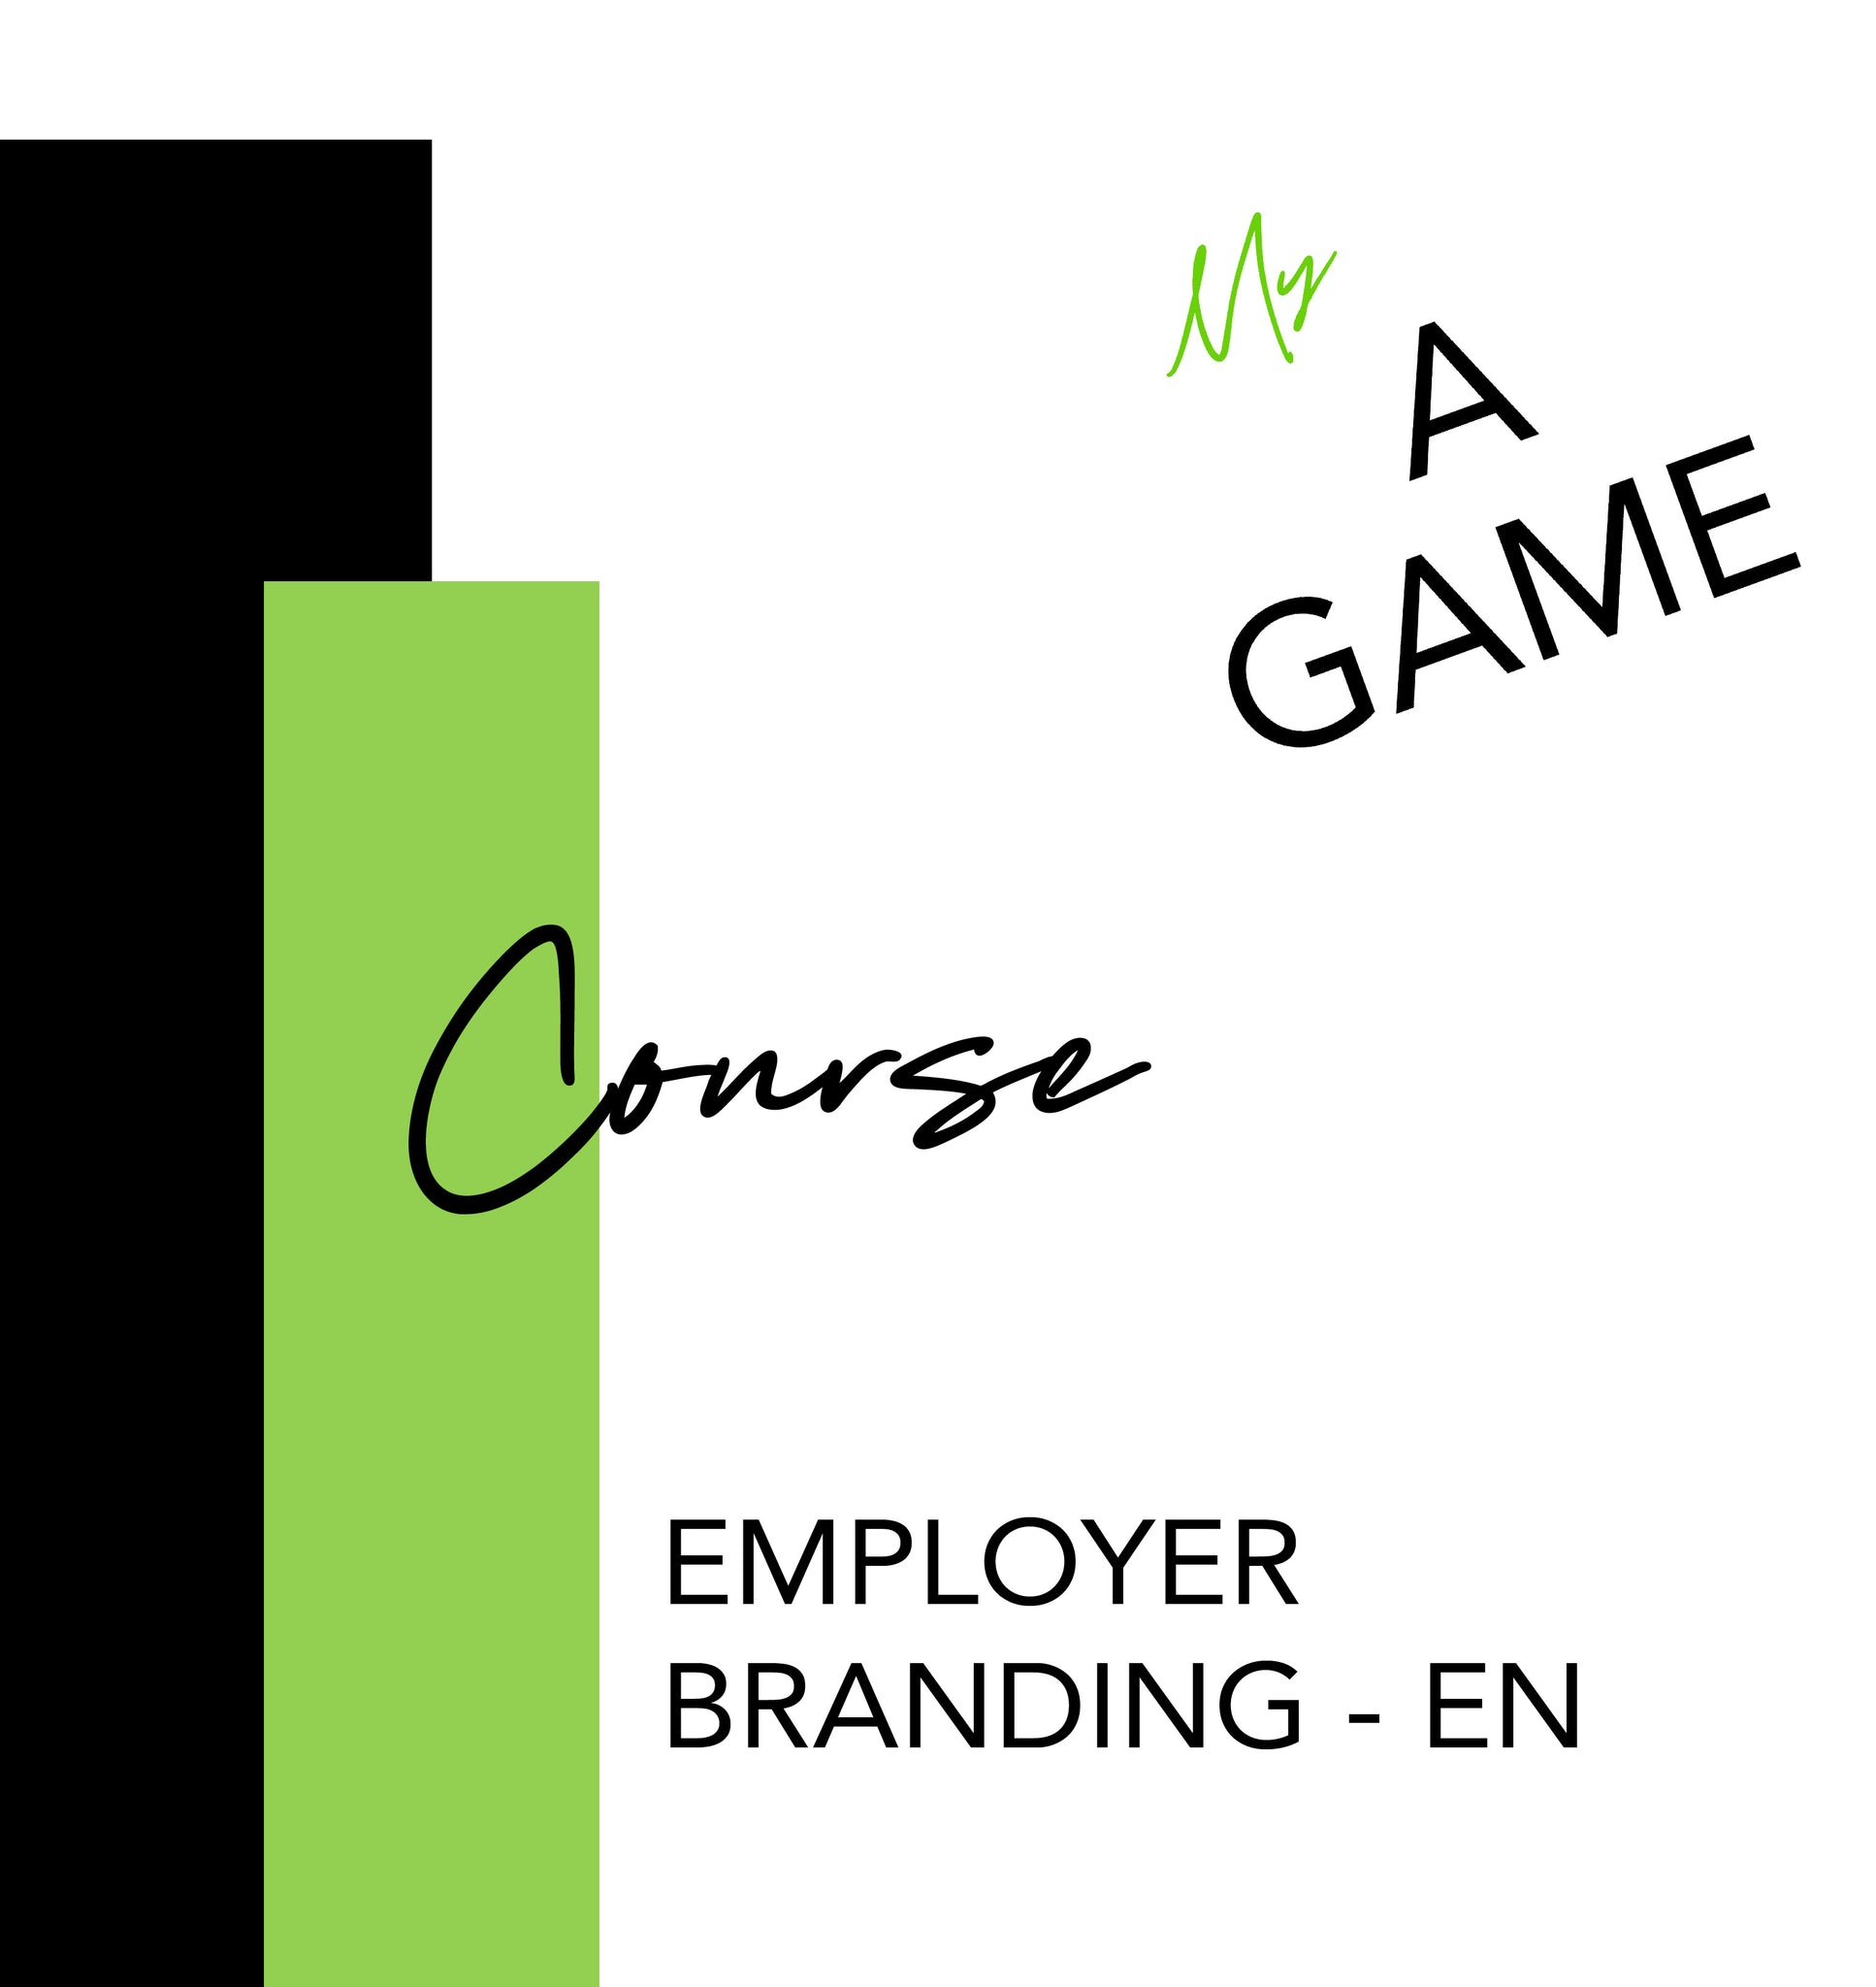 Special Course - Employer Branding - EN